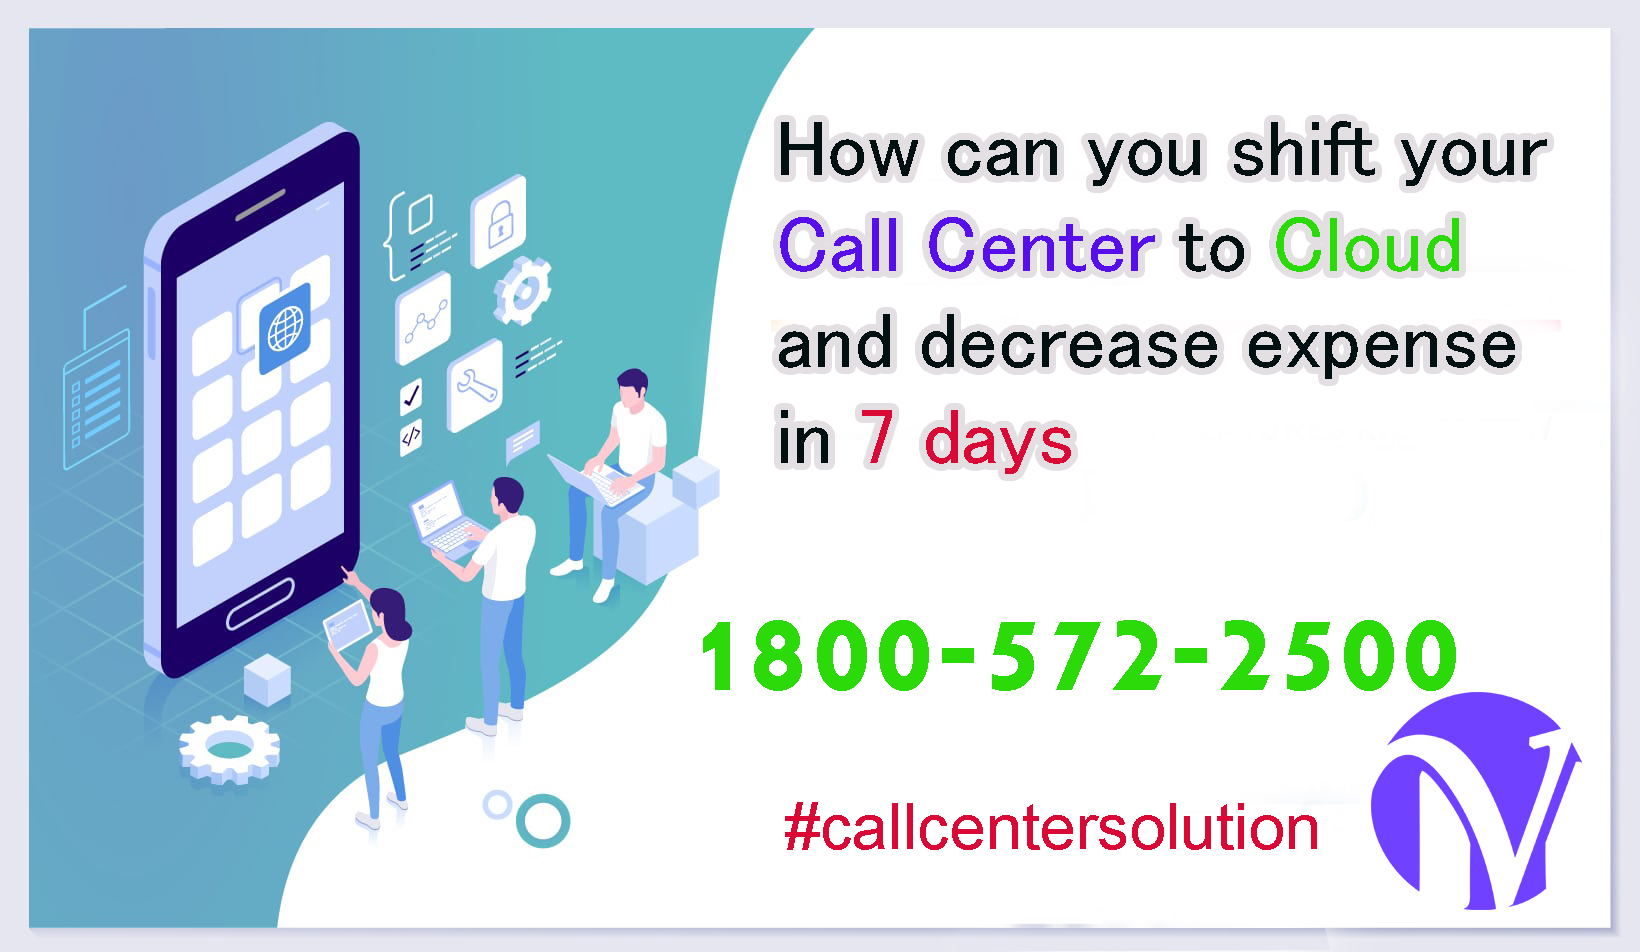 How can you shift your call center to Cloud and decrease expense in 7 days